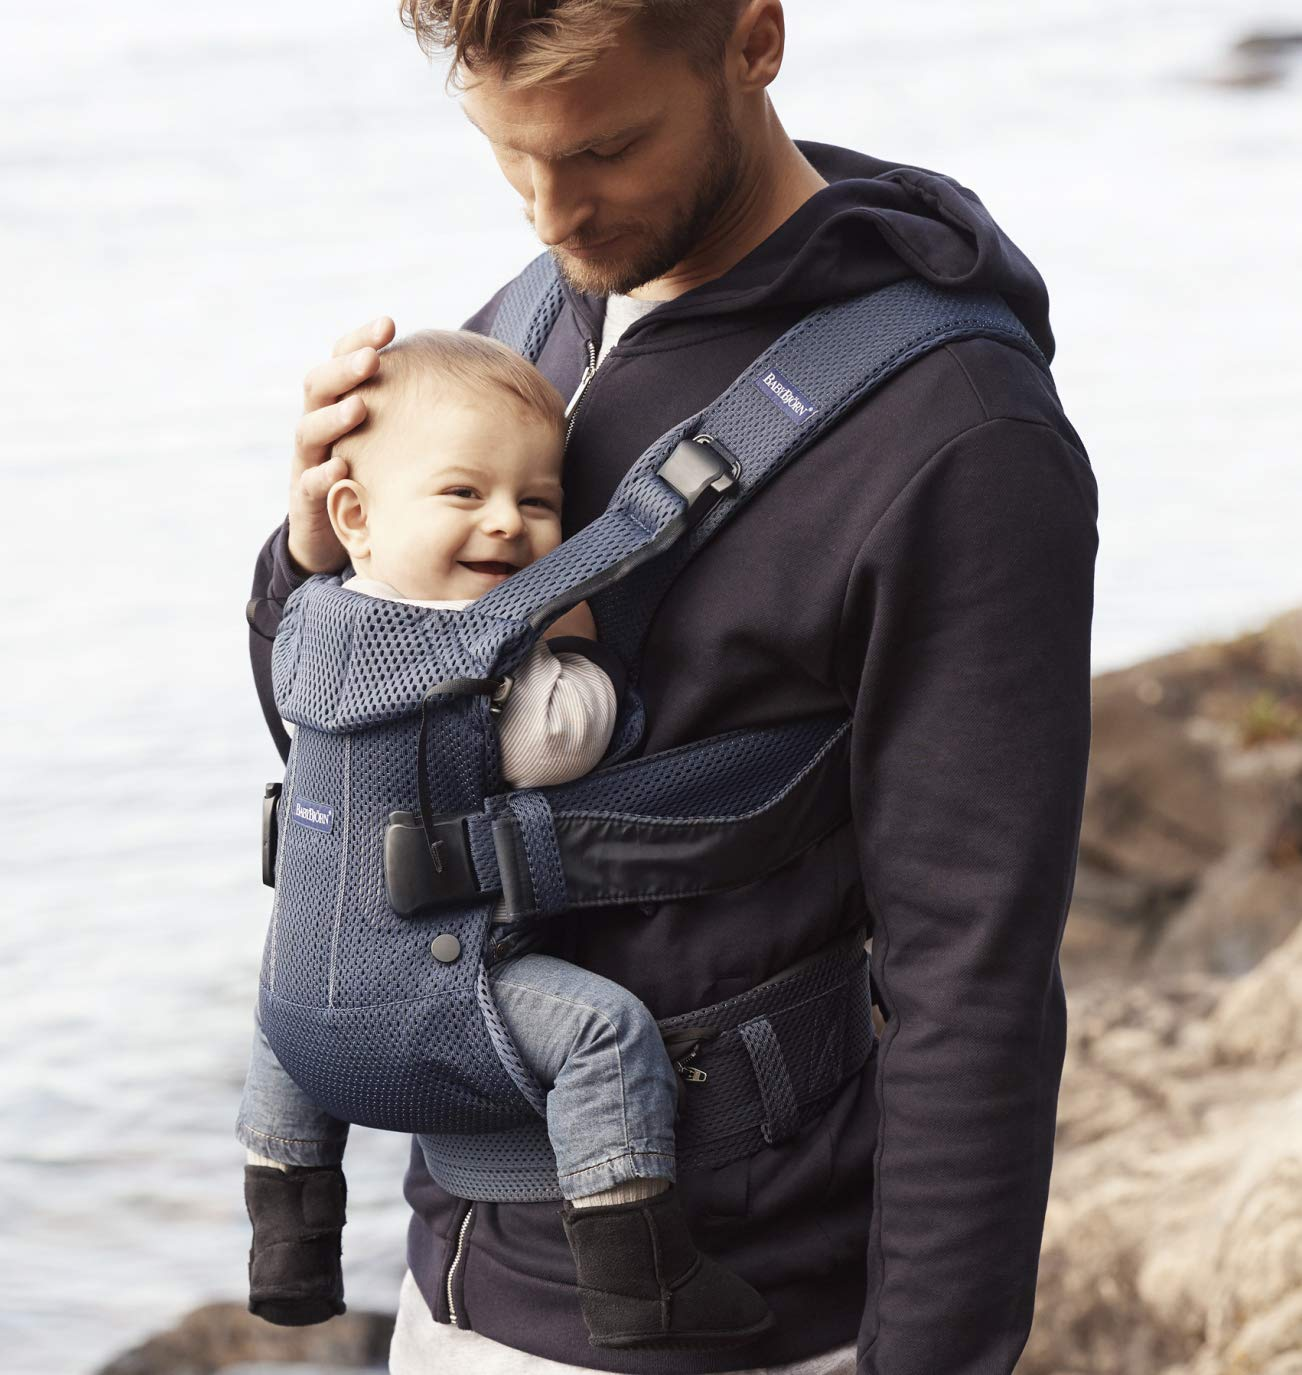 BABYBJÖRN Baby Carrier One Air, 3D Mesh, Navy Blue, 2018 Edition Baby Bjorn The latest version (2018) with soft and breathable mesh that dries quickly Ergonomic baby carrier with excellent support 4 carrying positions: facing in (two height positions), facing out or on your back 6